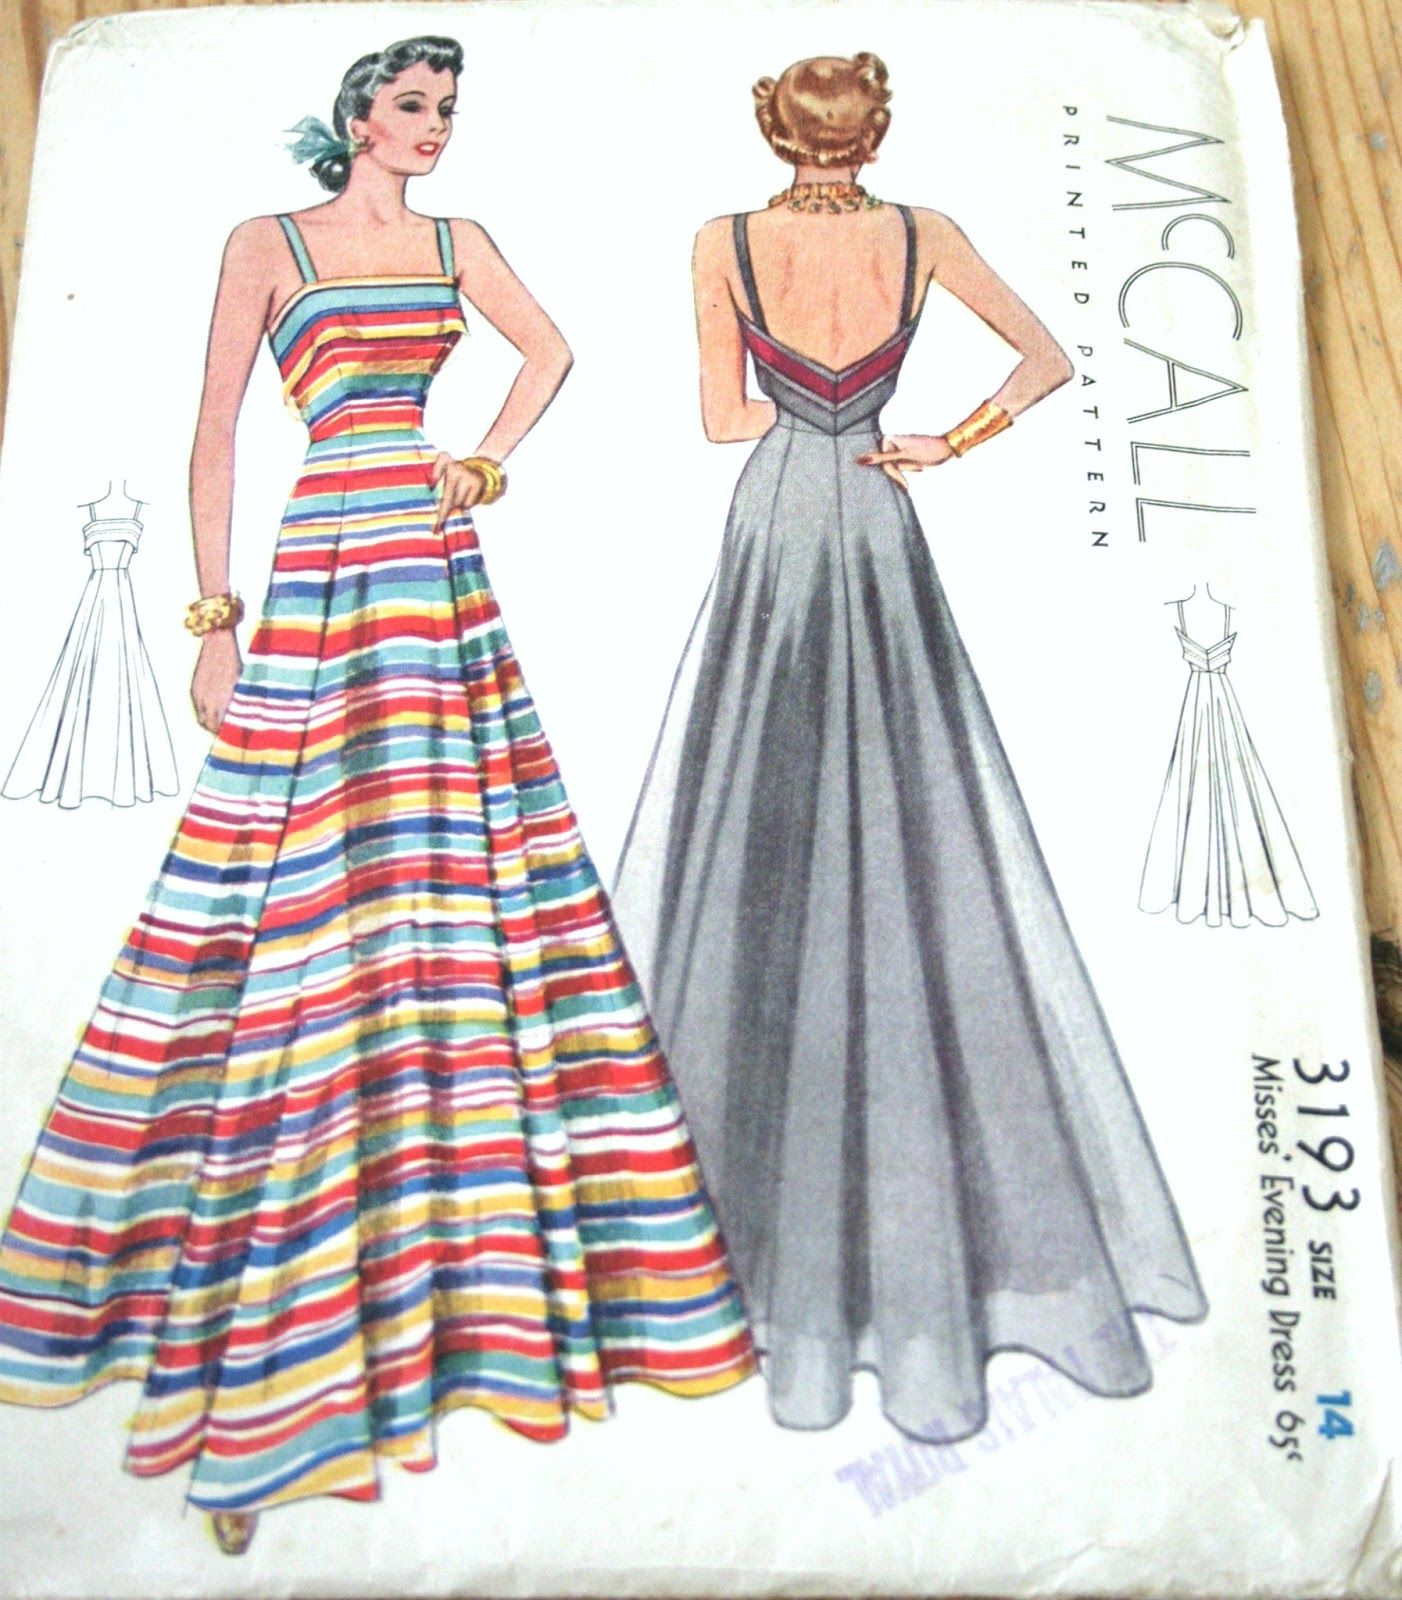 My happy sewing place shop my vintage pattern stash crafts mccall 3193 gown sewing pattern 1939 by sewinghappy on etsy could be modified into nice beach pyjamas jeuxipadfo Gallery